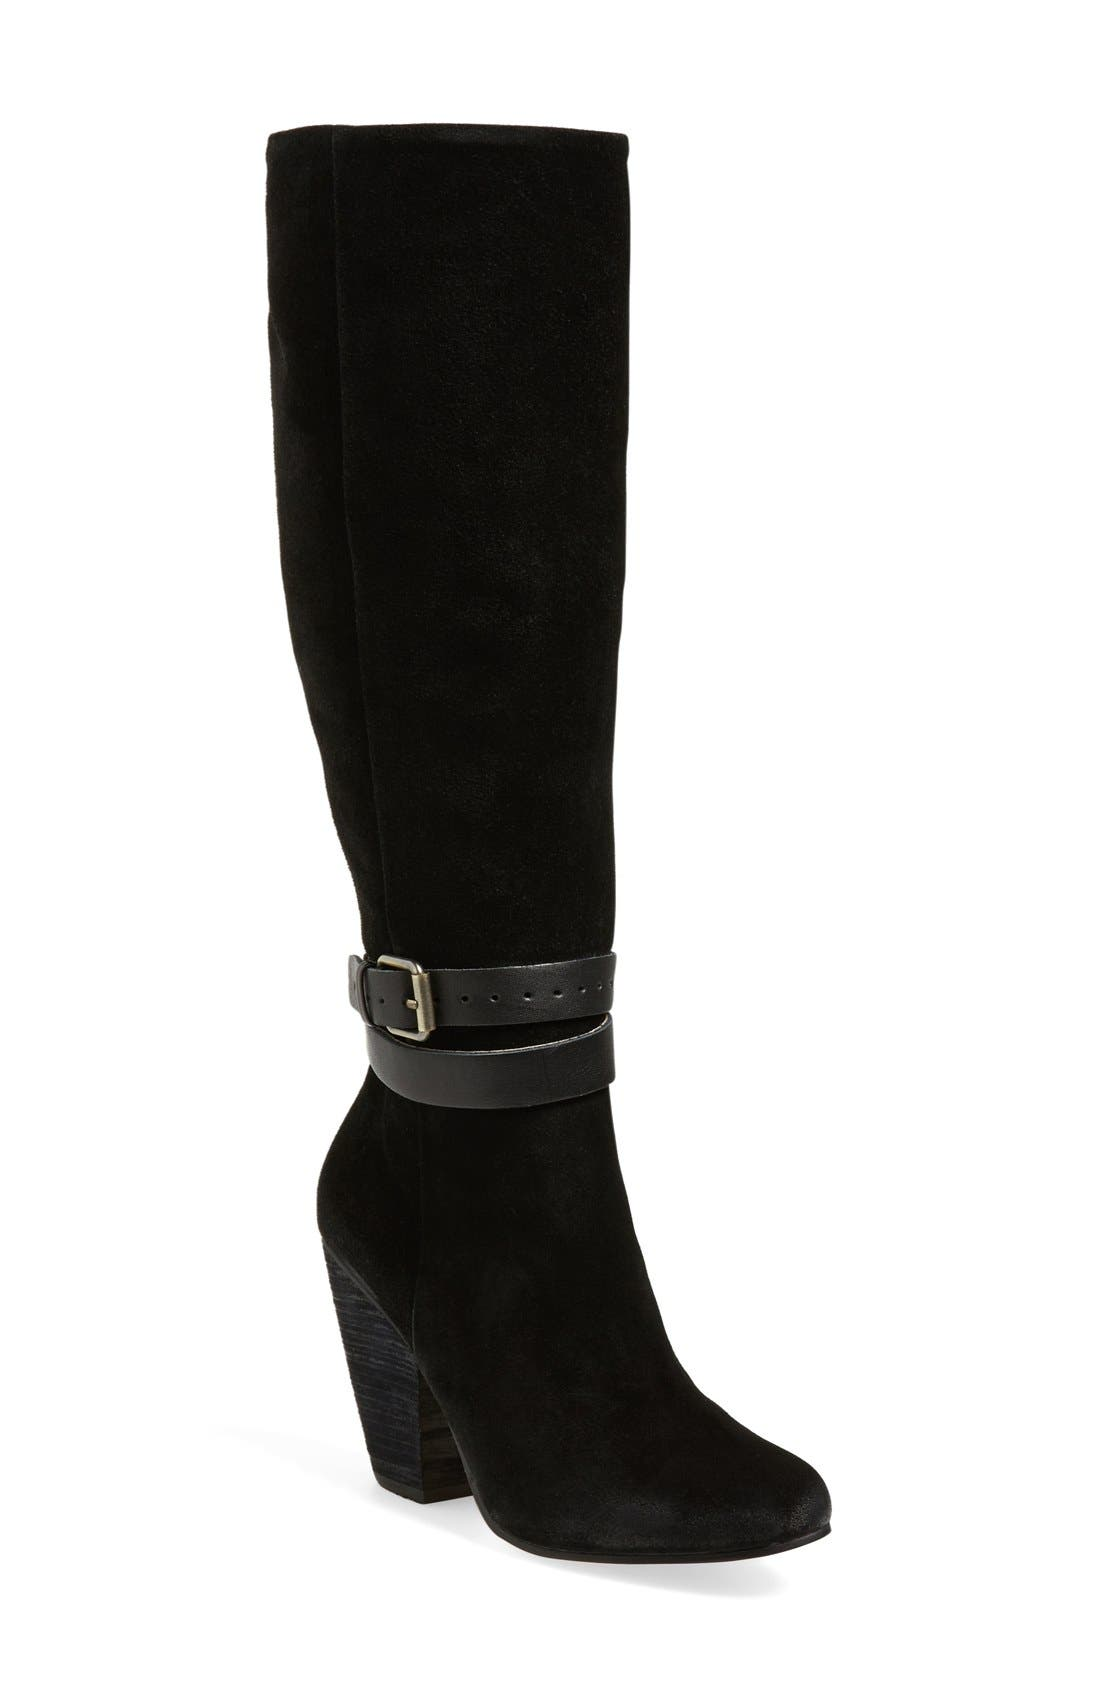 Main Image - Corso Como 'Aspire' Tall Boot (Women)